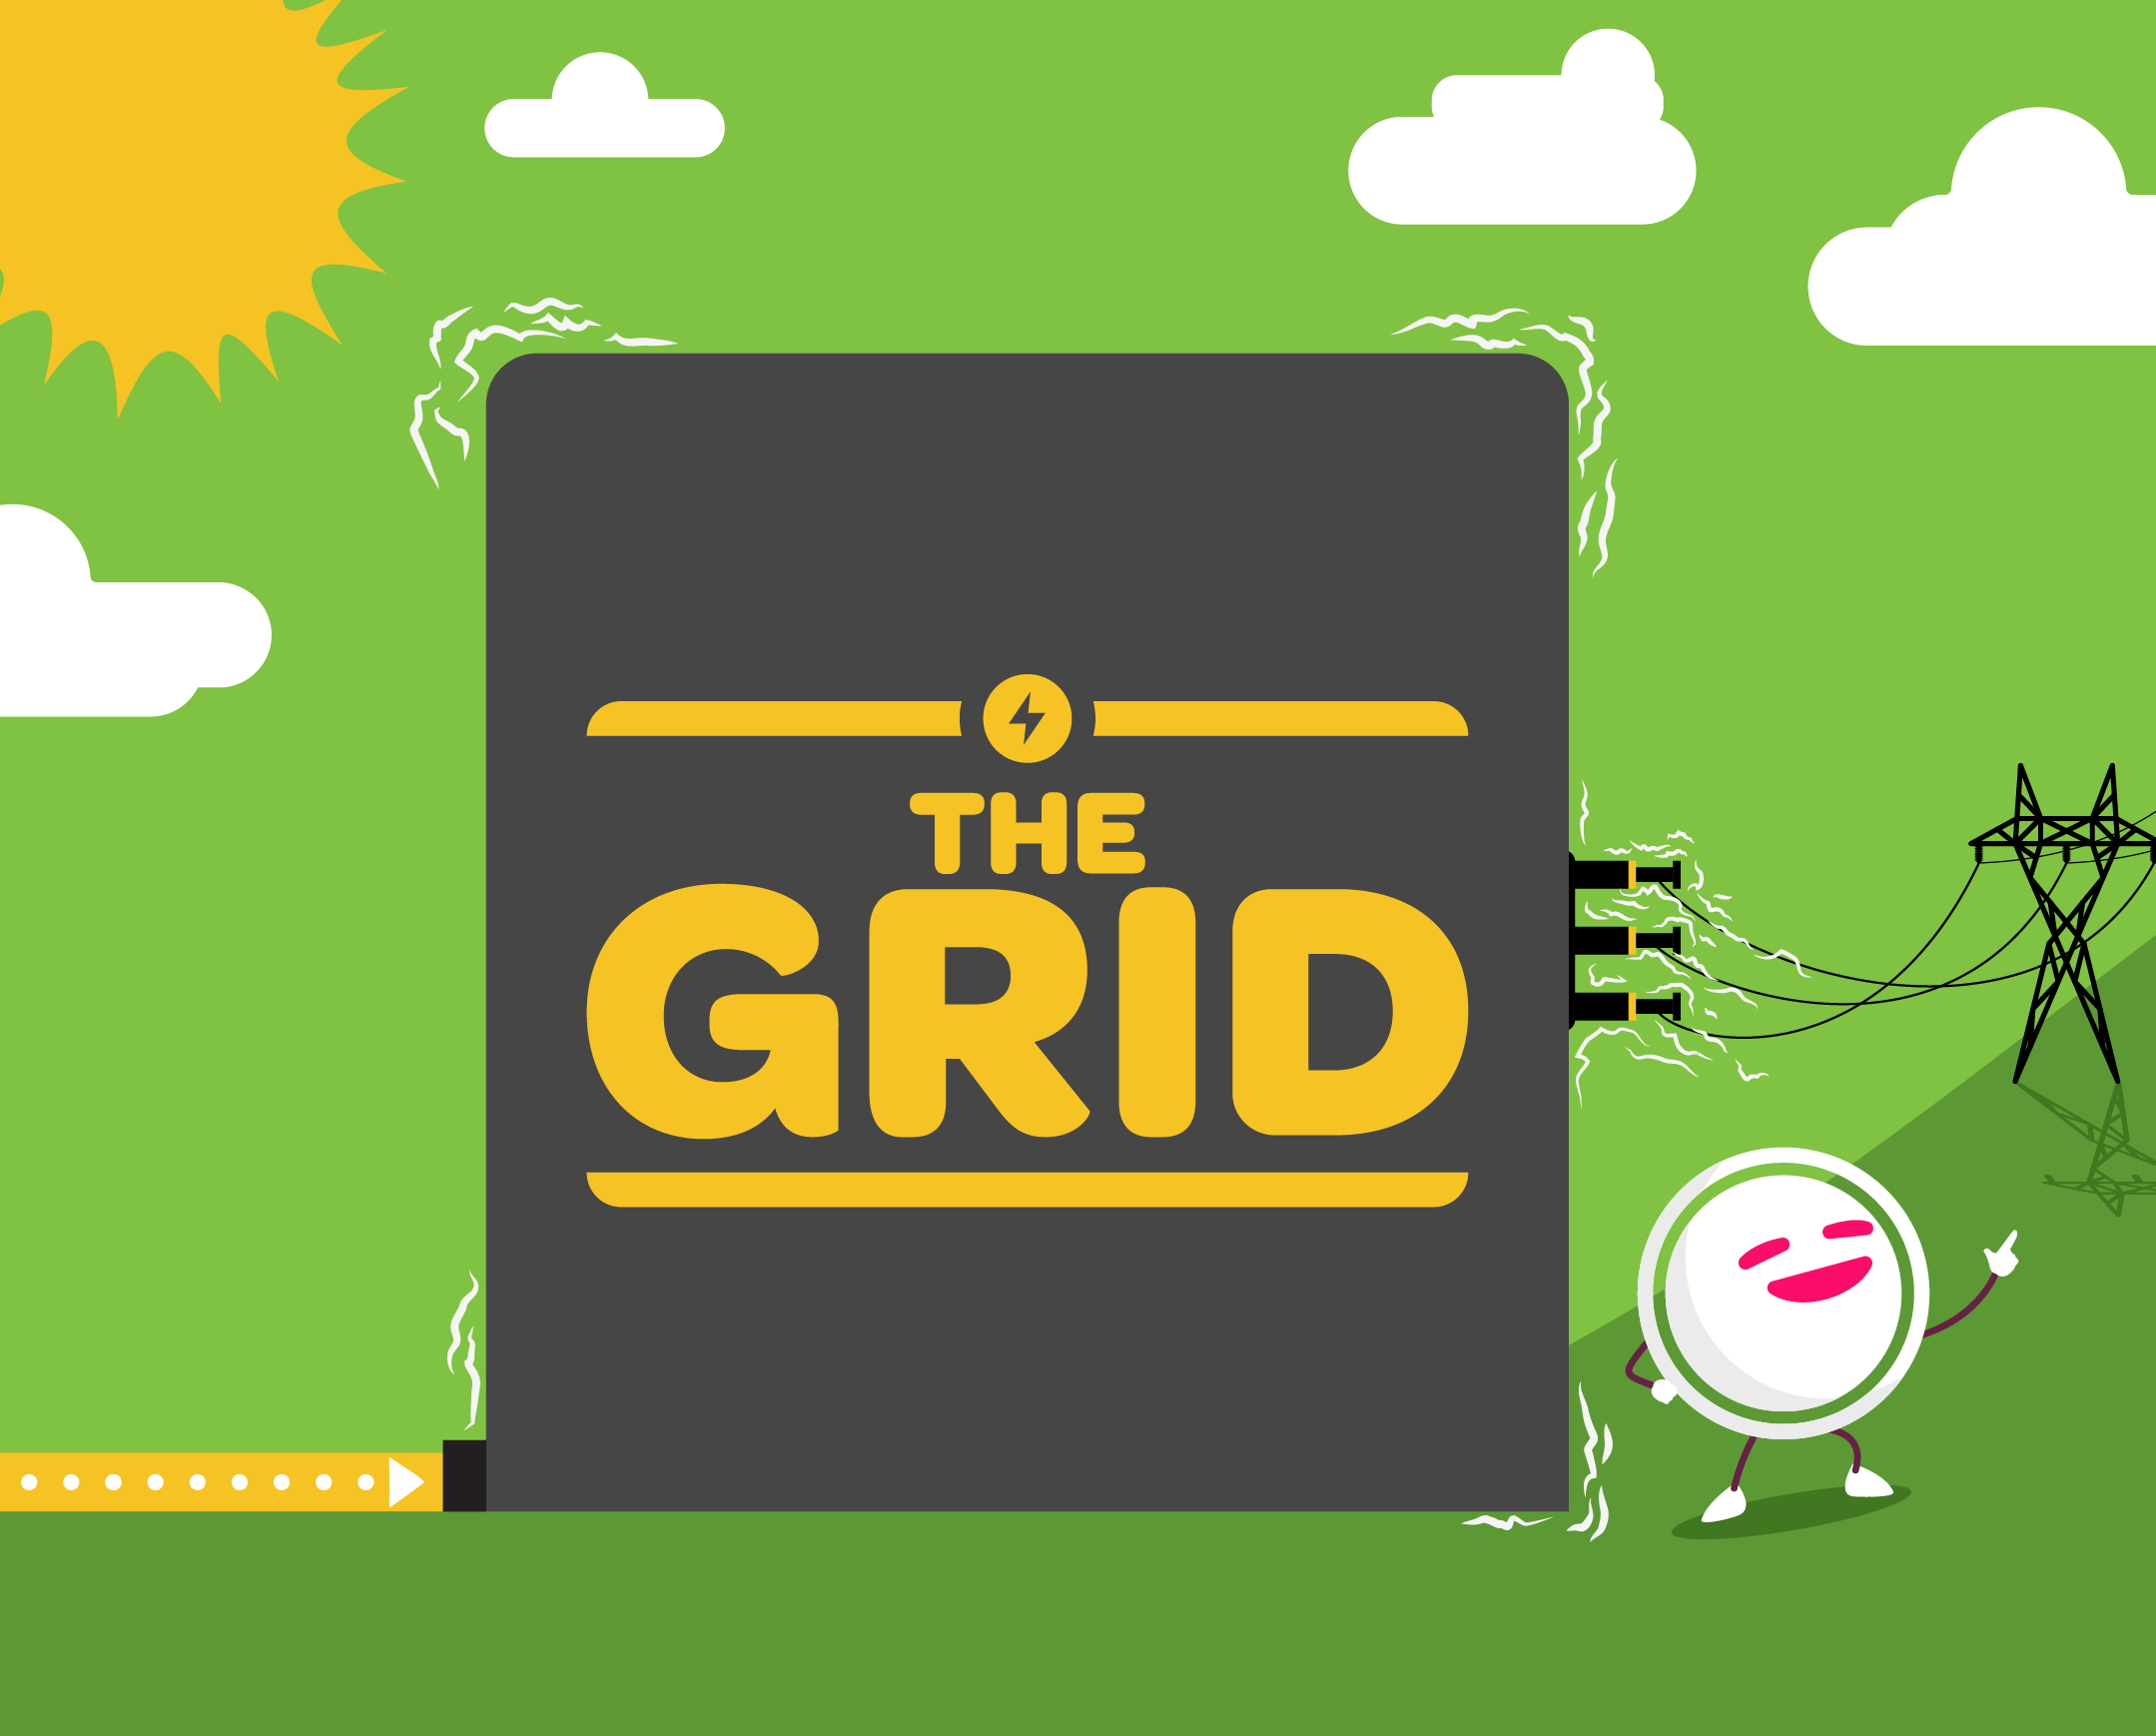 Illustration of the electricity power grid